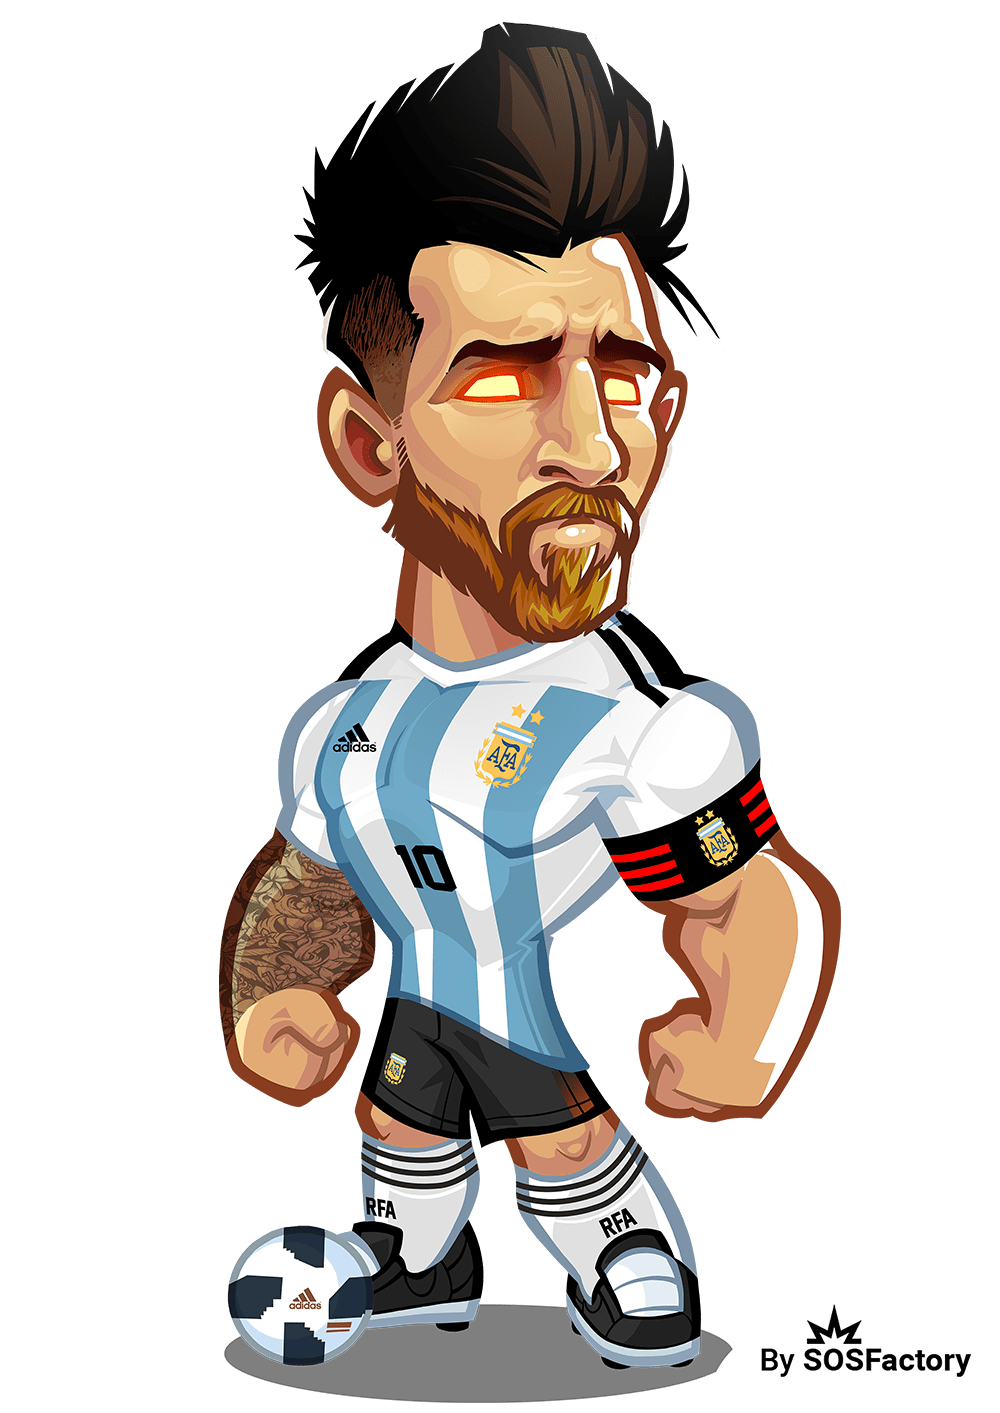 Worldcup russia mascotization project. Drawing messi cr7 image download